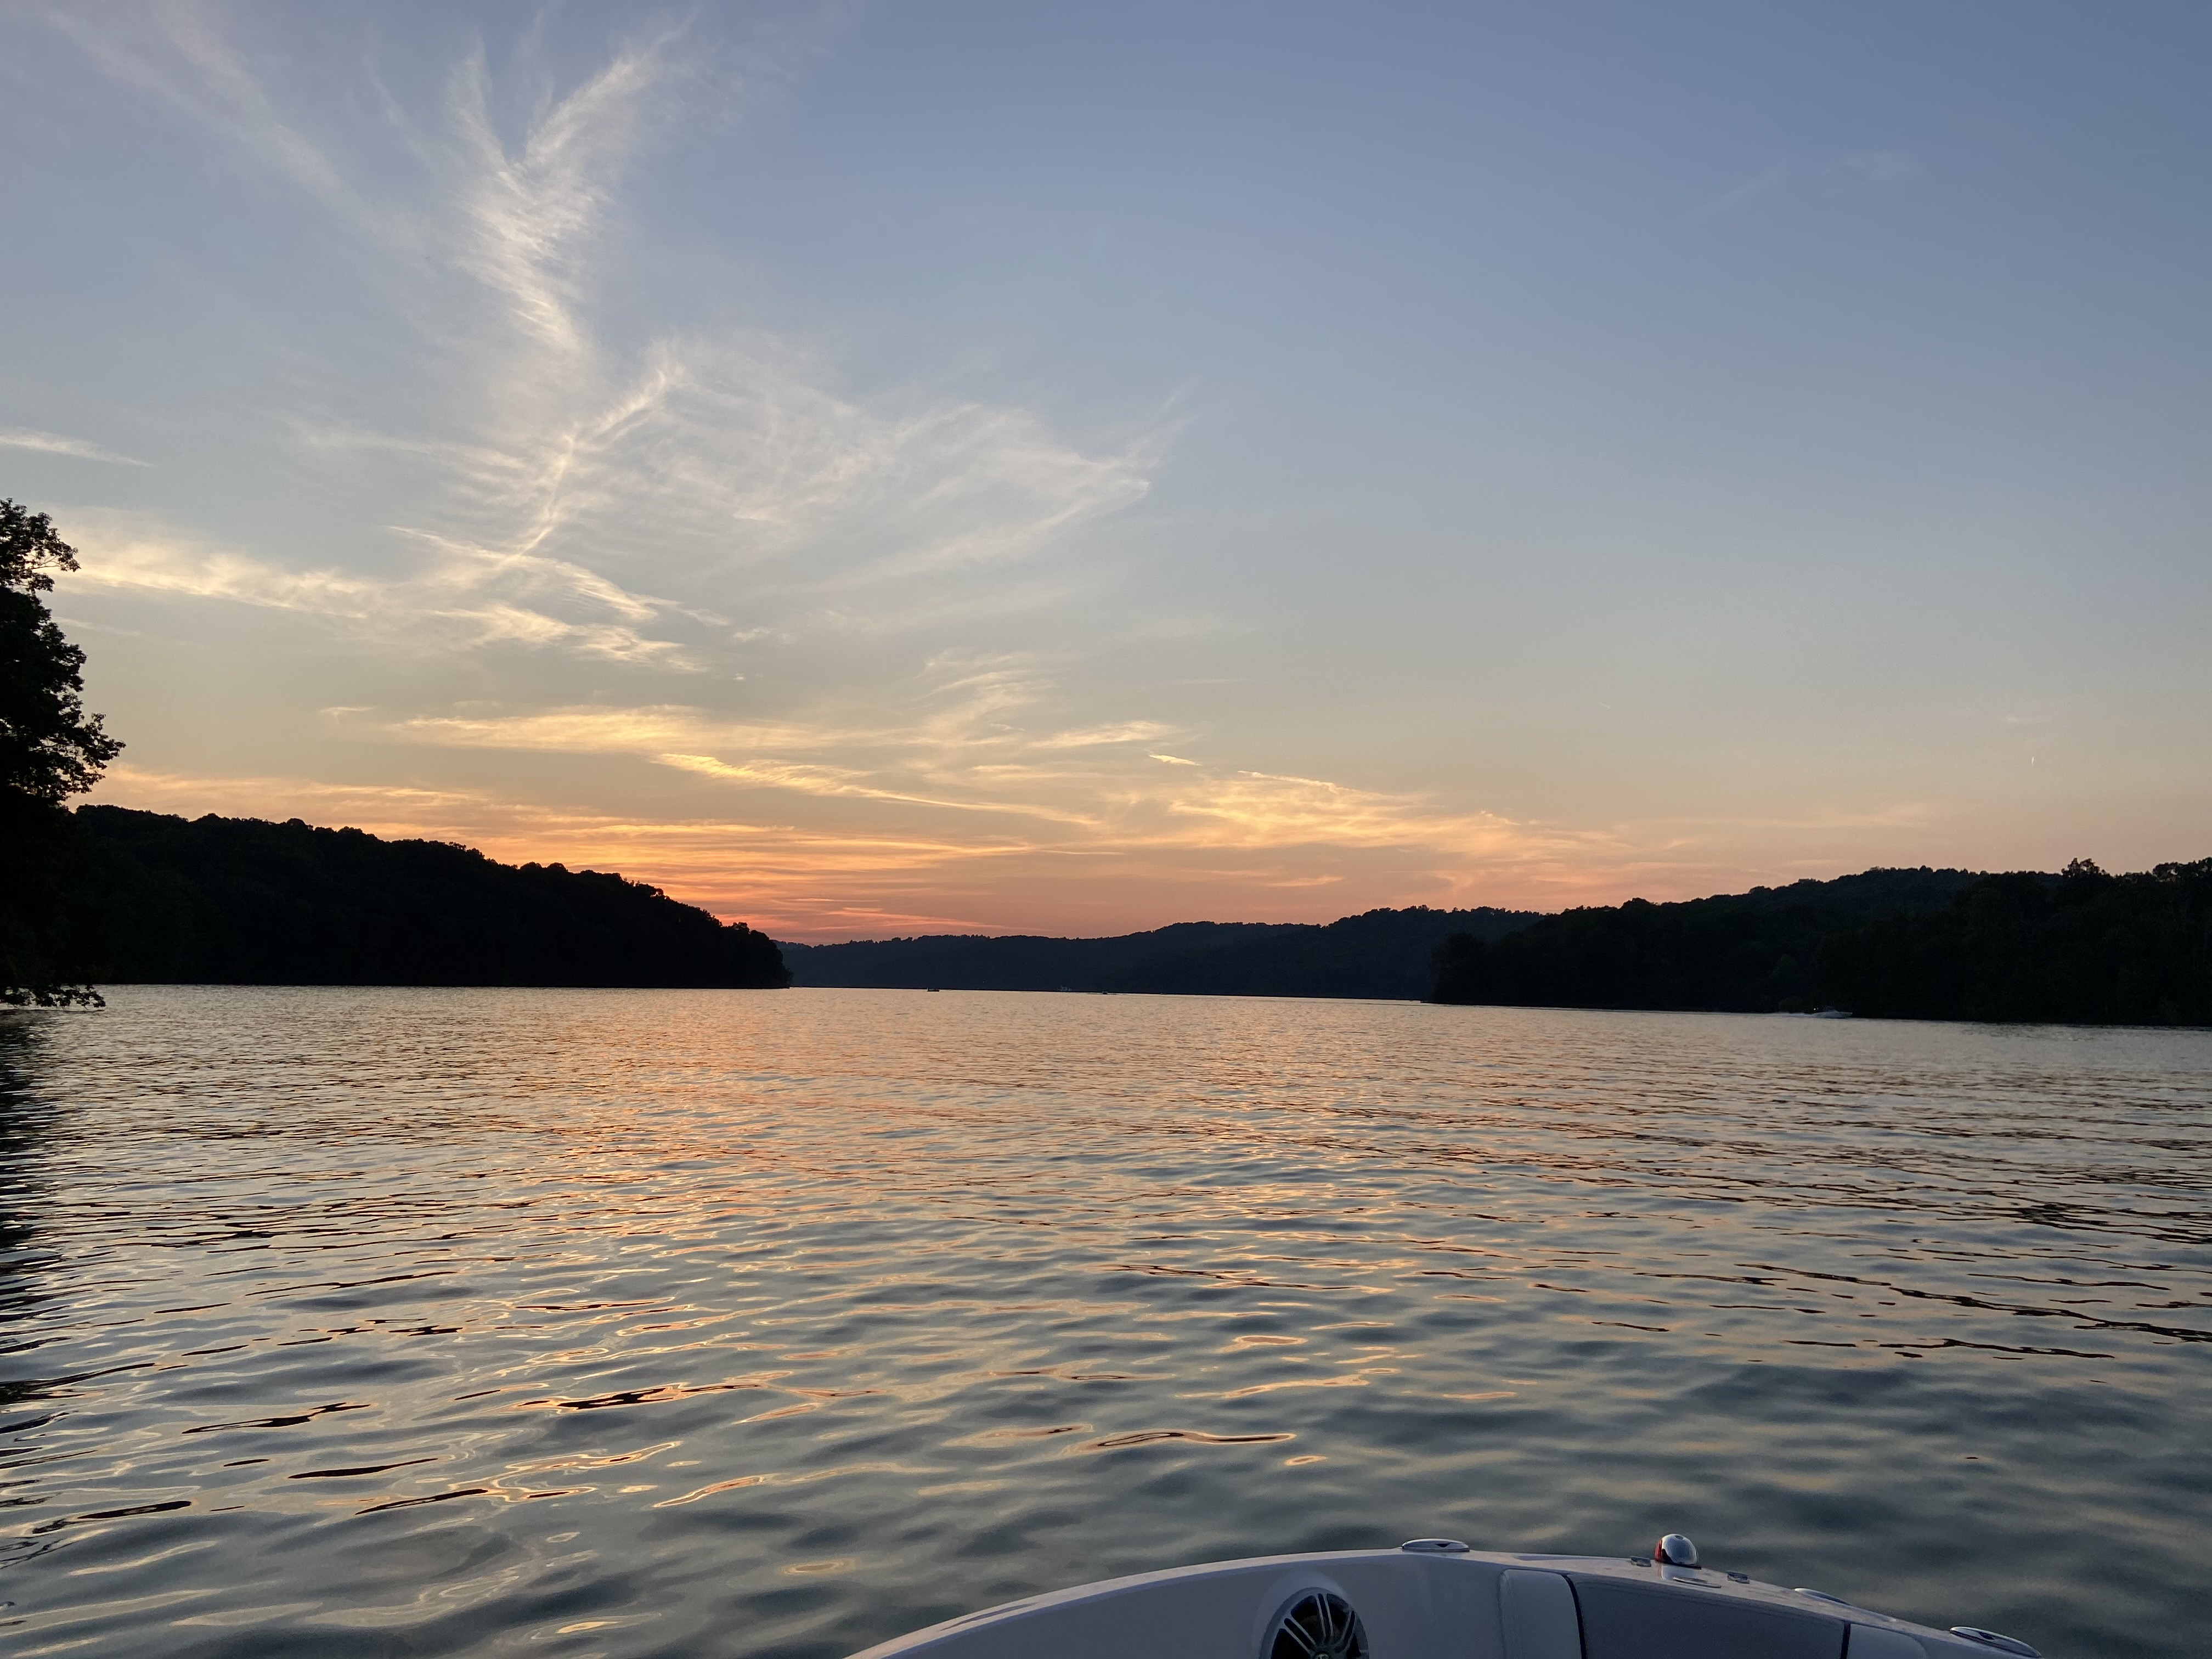 TOP 6 EXCITING THINGS TO DO AT NORRIS LAKE YOU DON'T WANT TO MISS